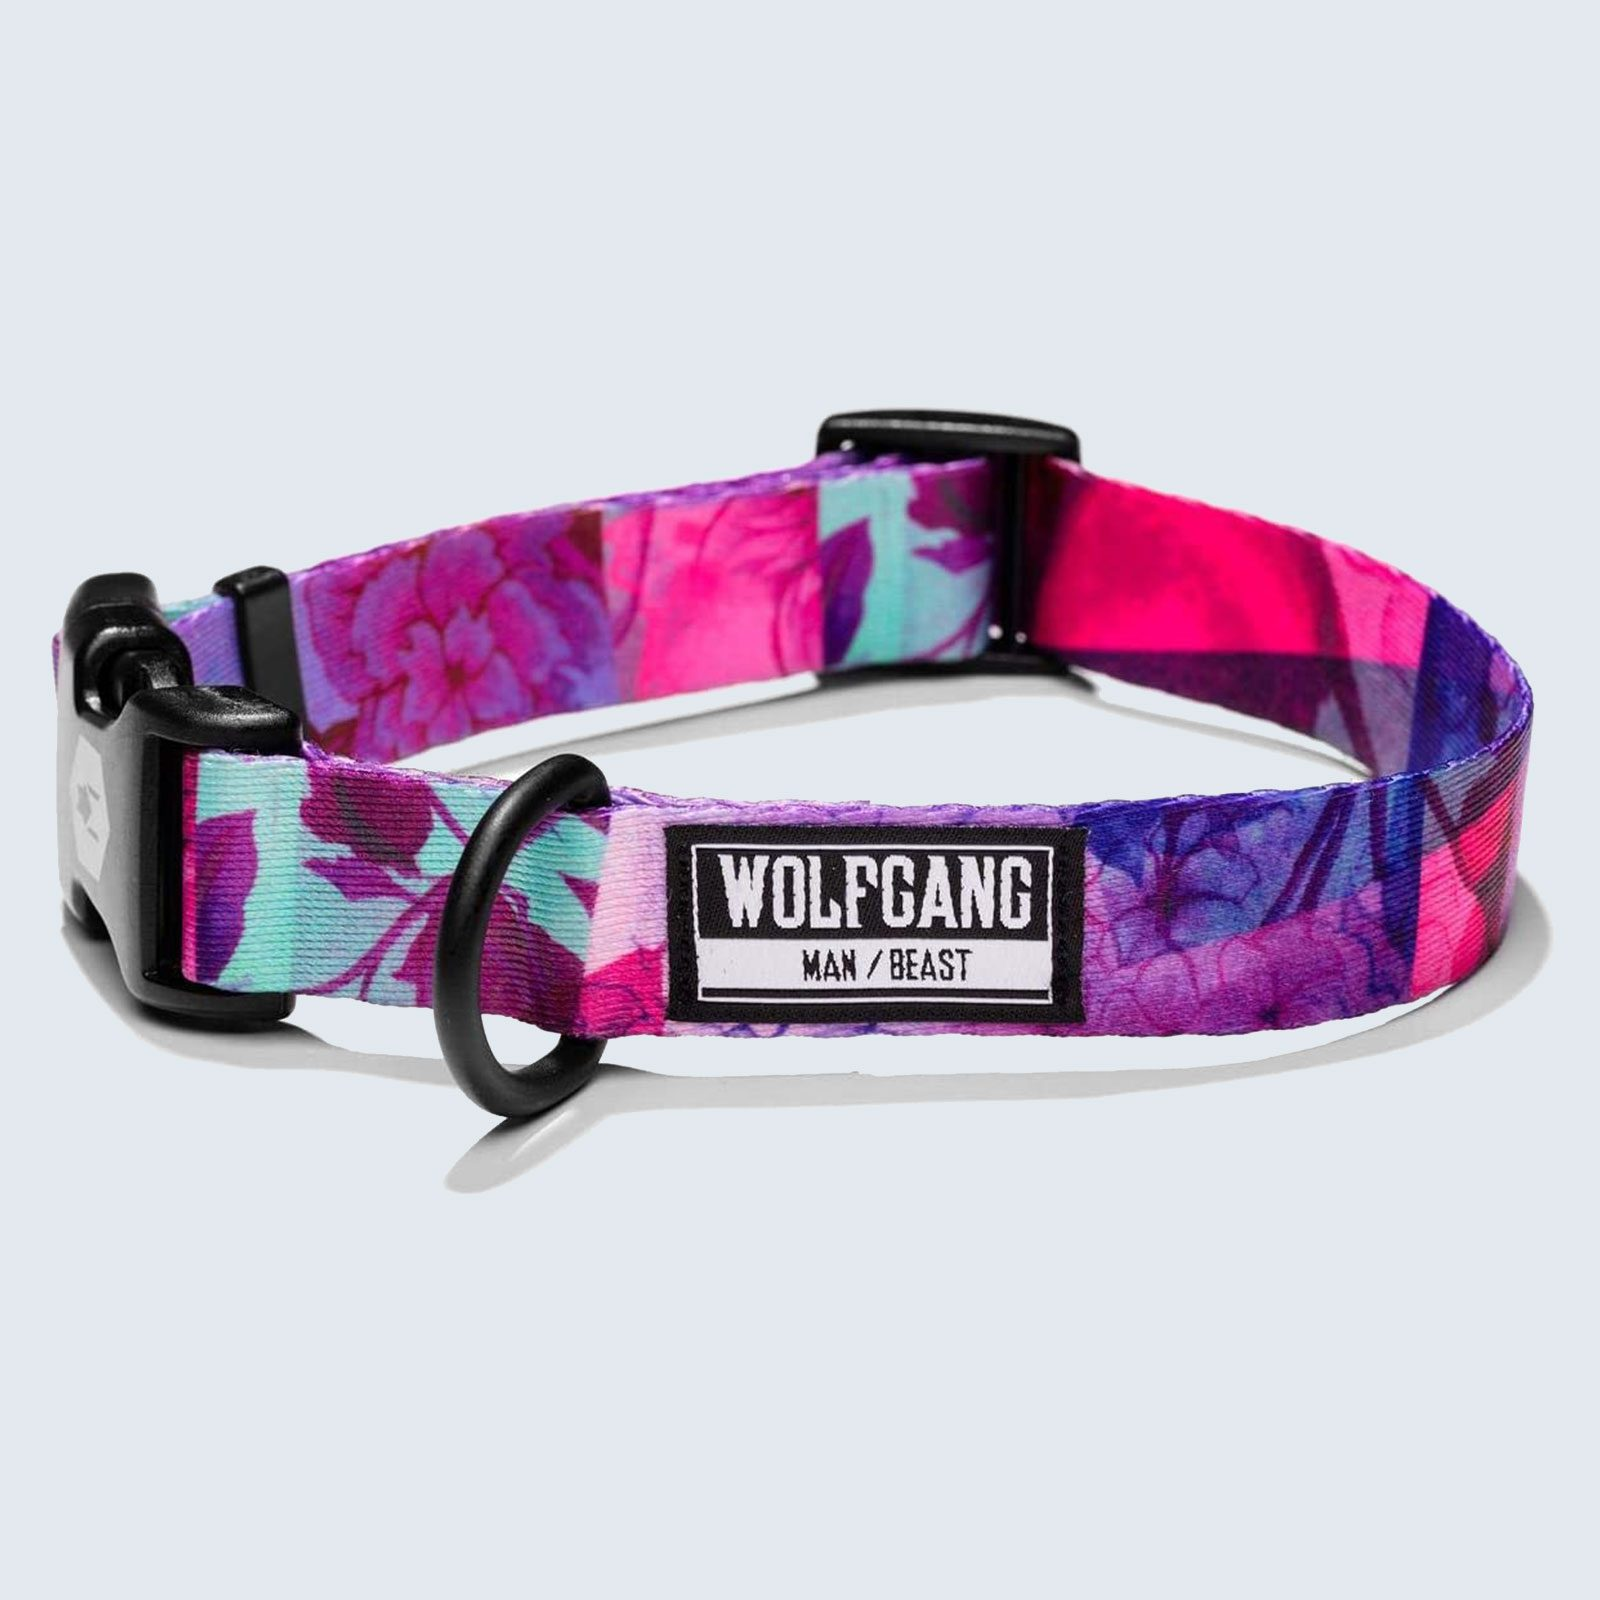 For the best friend: Wolfgang Man & Beast Dog Collar